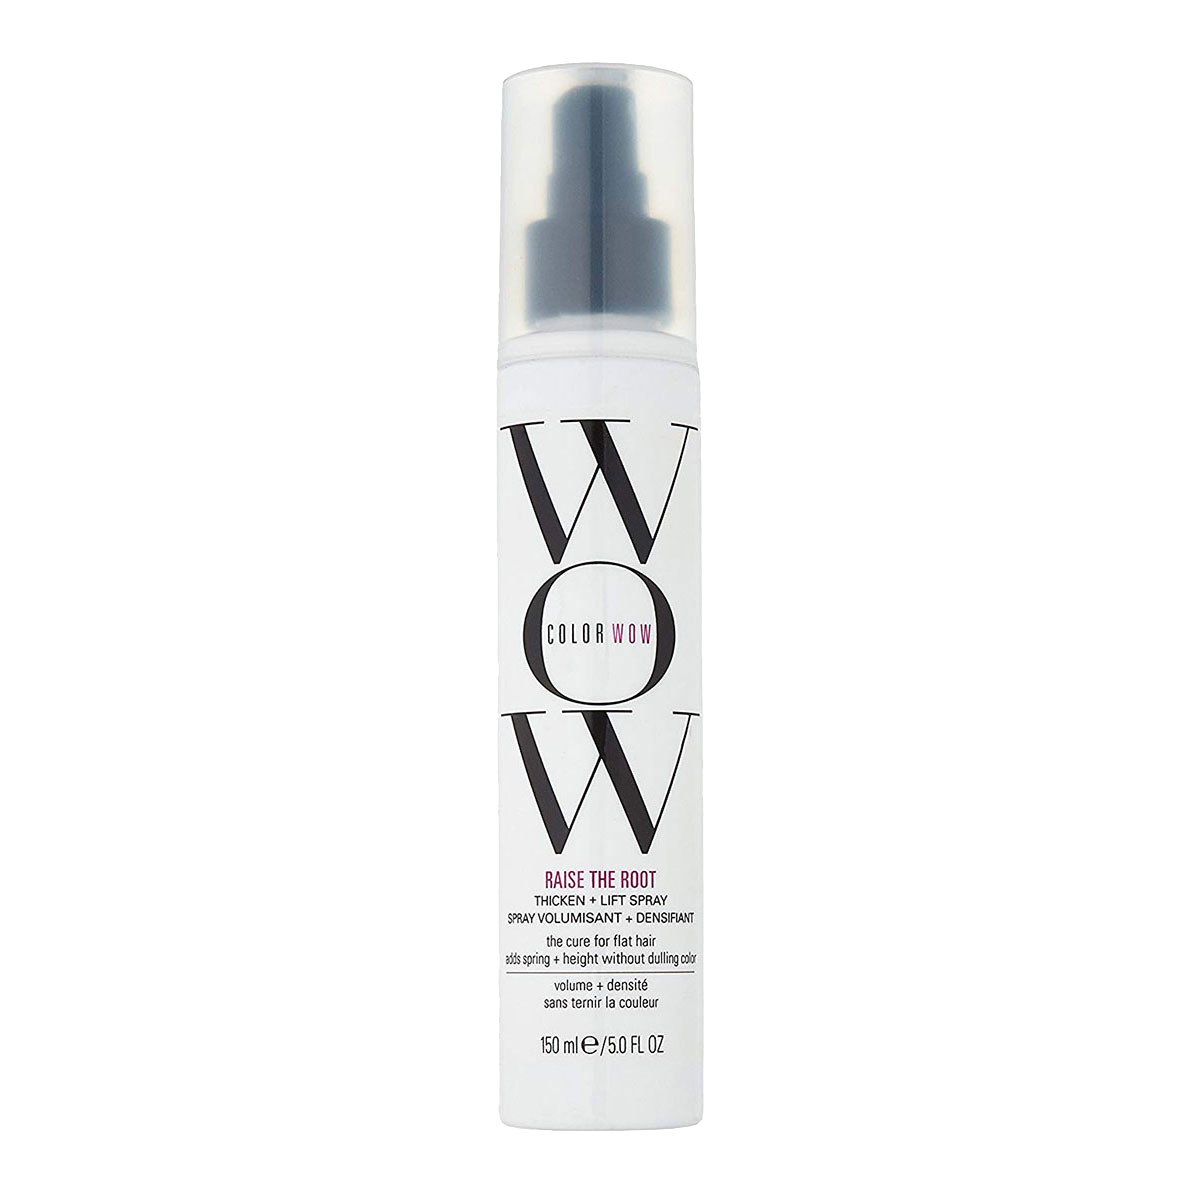 Wow Raise The Root Lift Spray